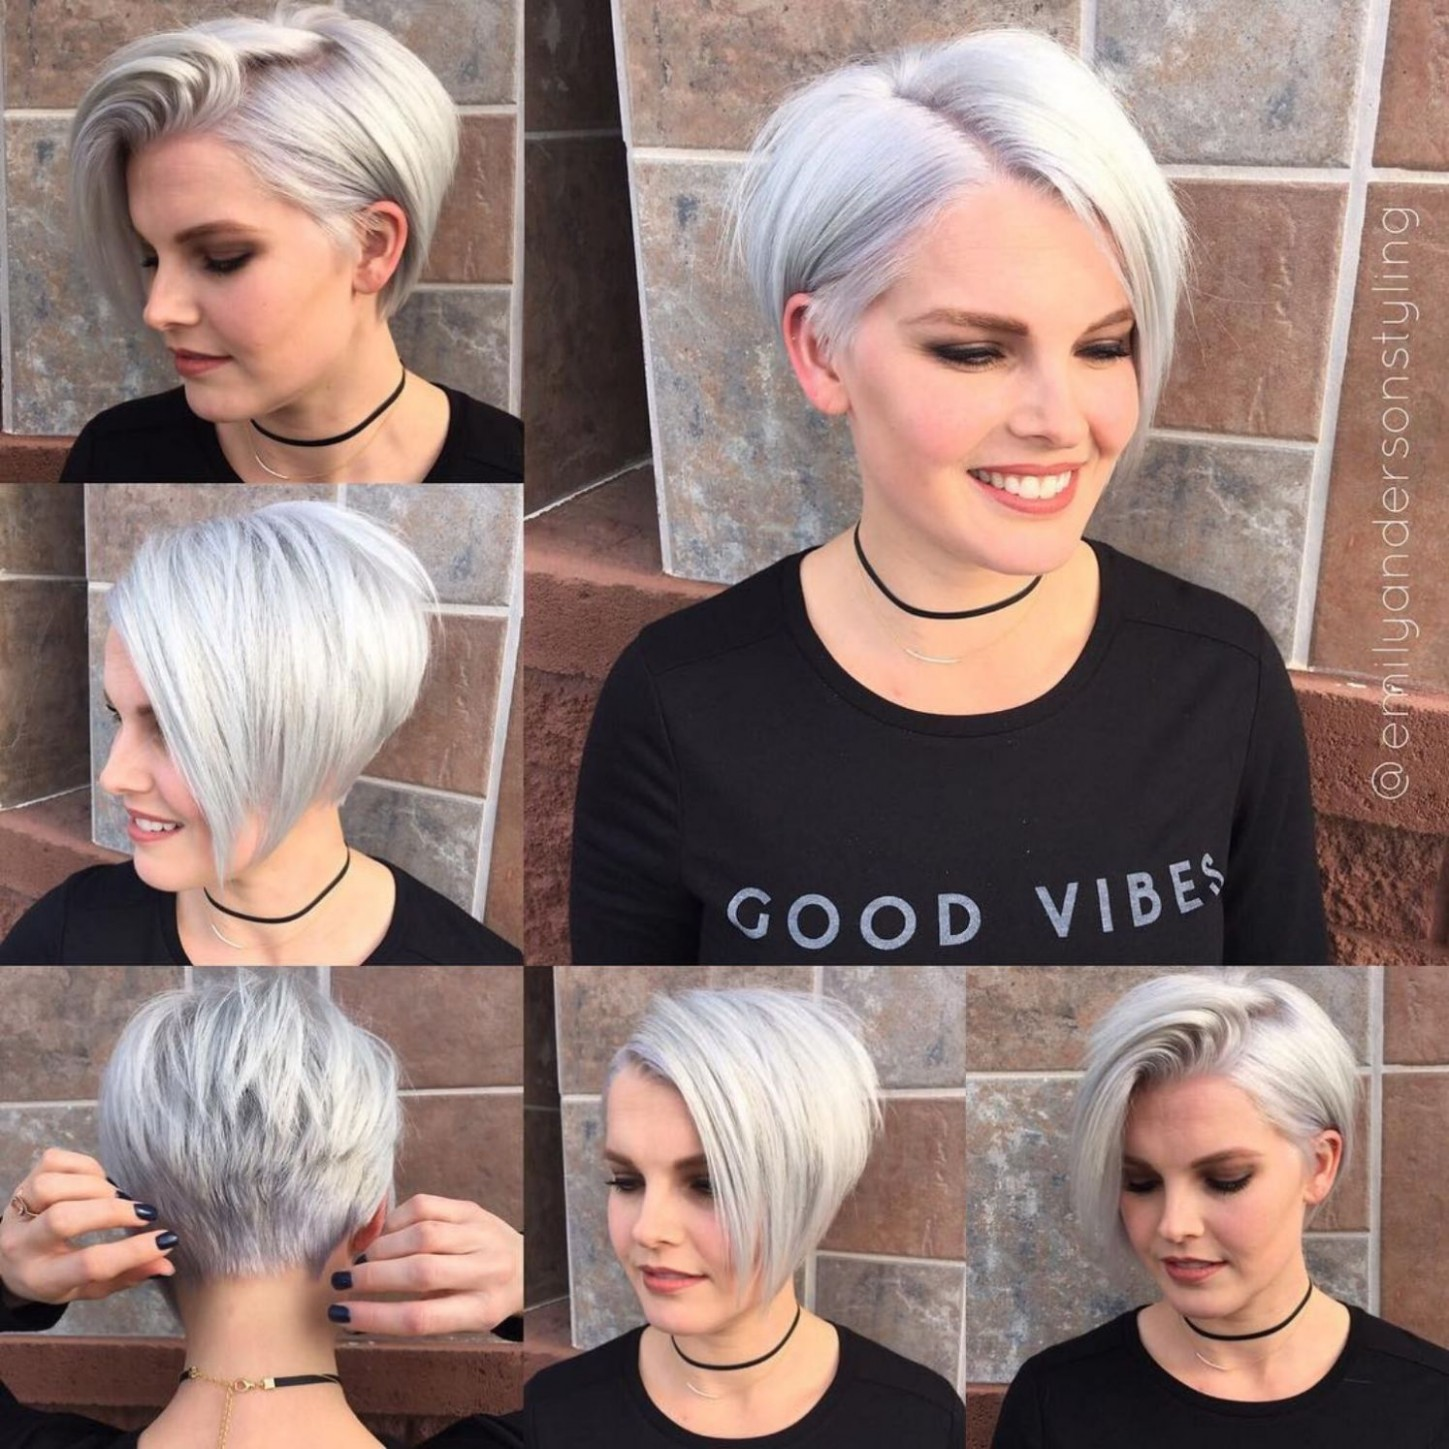 Top 10 Flattering Hairstyles For Round Faces Hairstyles For Pixie Cut For Round Chubby Face